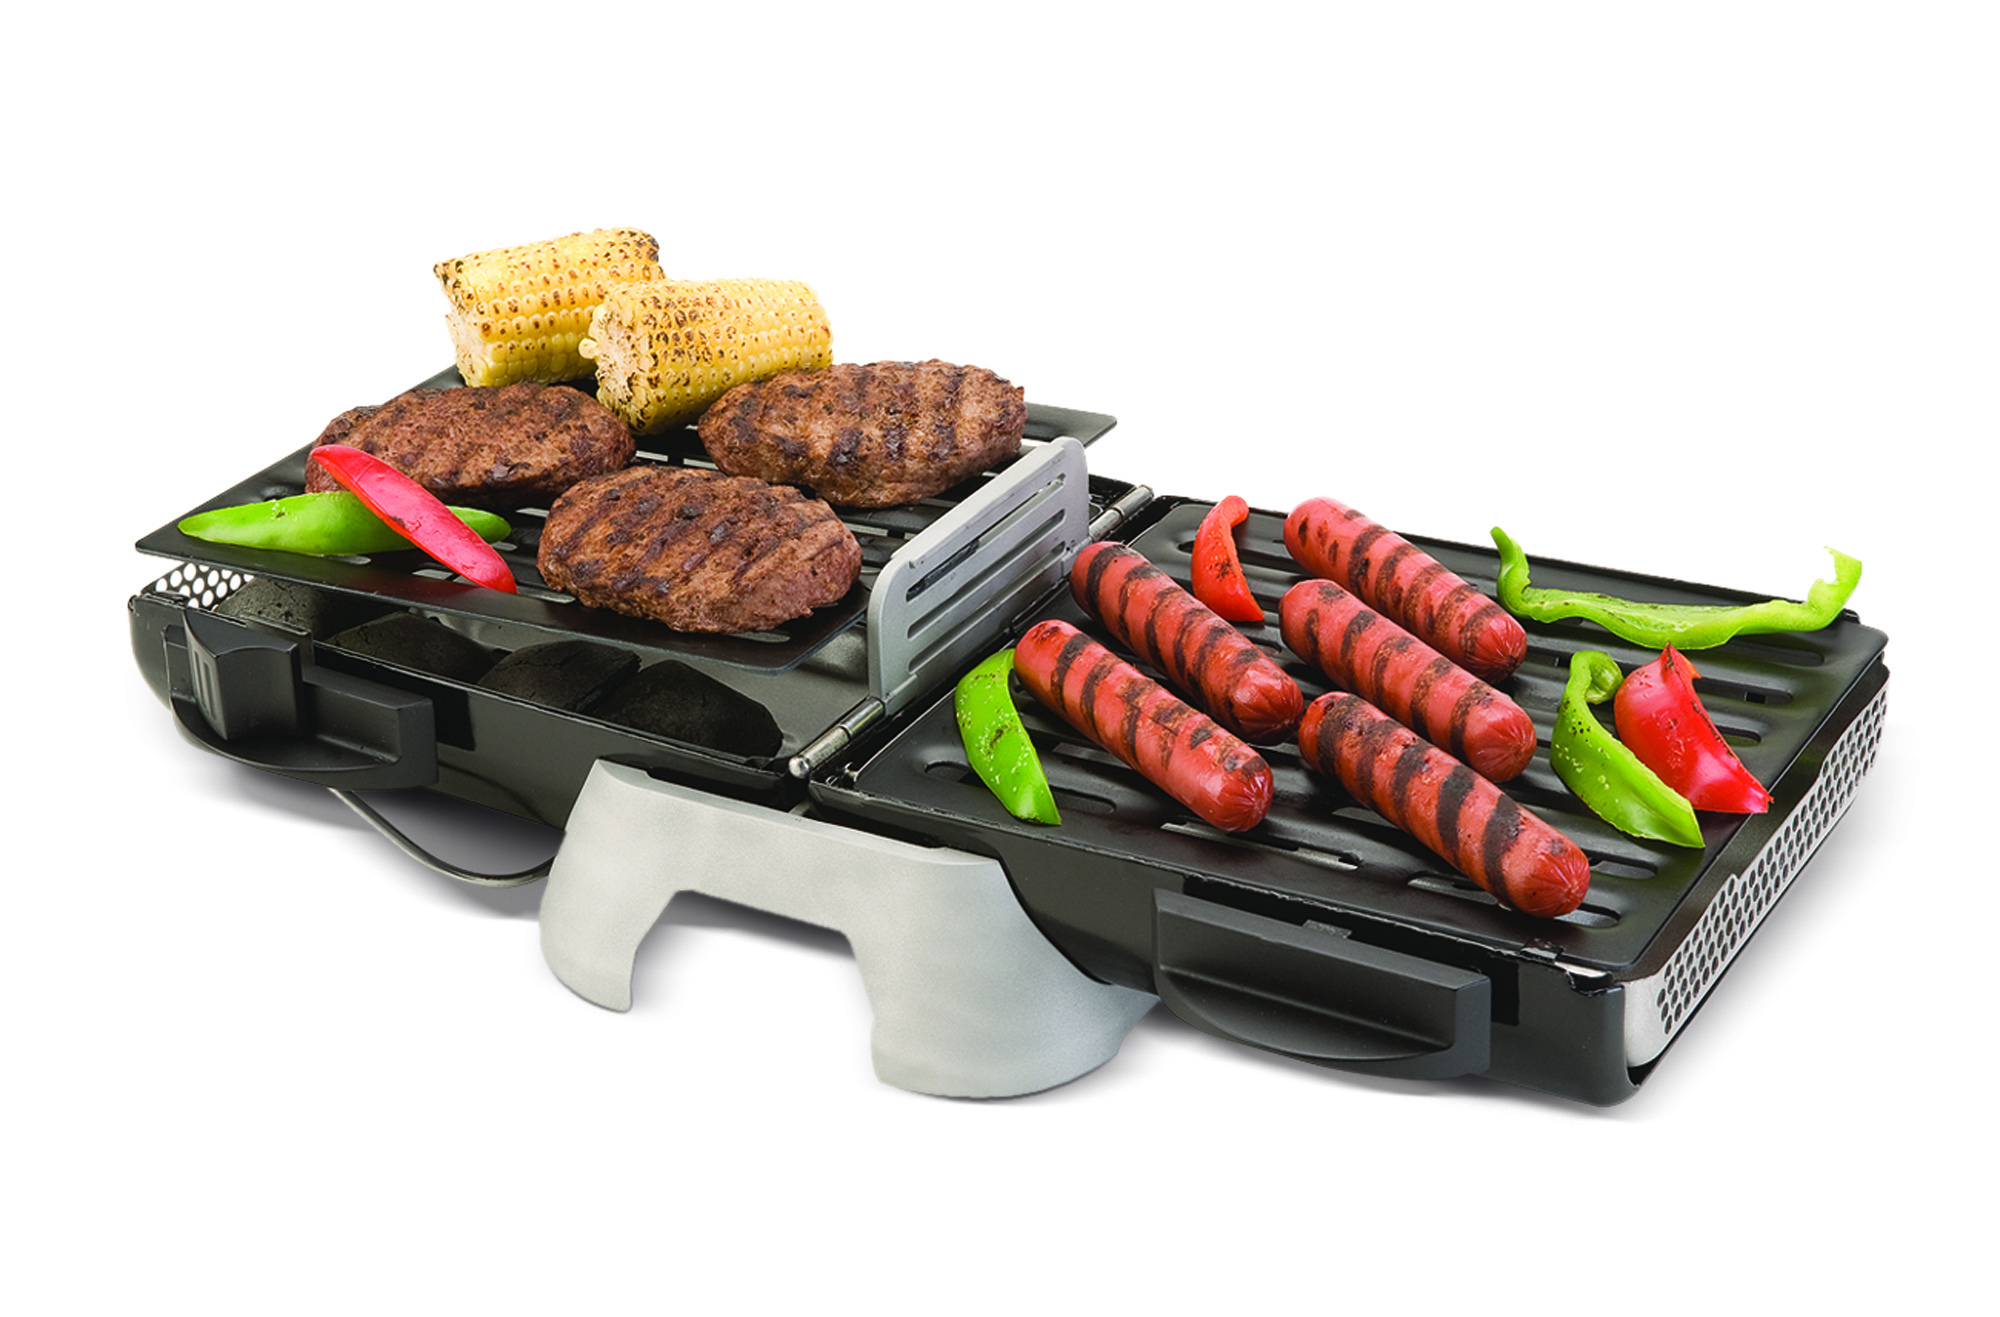 The Coleman Fold N Go Charcoal Grill features a folding design and adjustable grill grates.